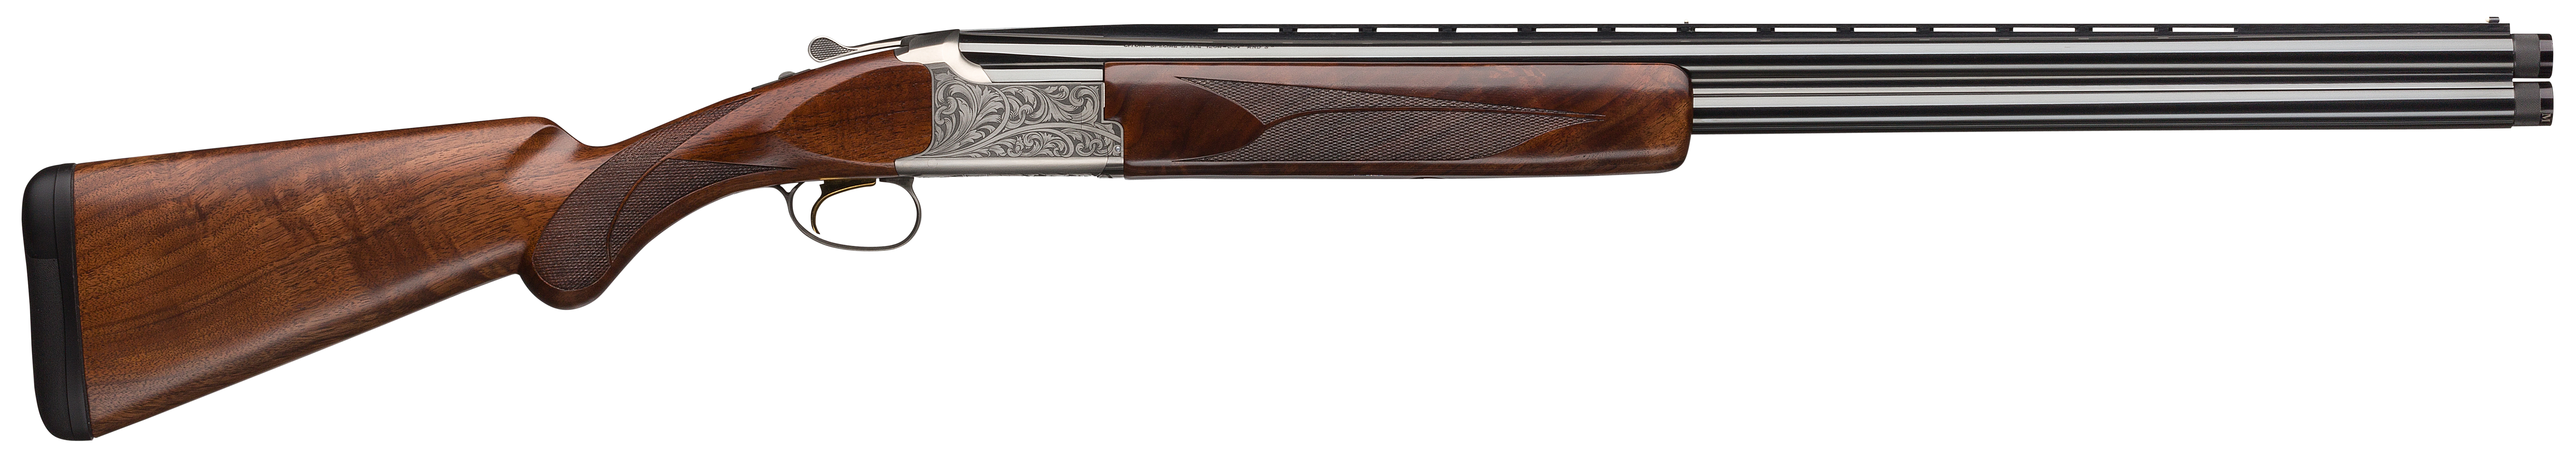 Browning Citori White Lightning Over/Under Shotgun 3'' 12 Gauge 26'' Silver Nitride Steel/Blued Barrel - Grade III Gloss/Grade IV Walnut